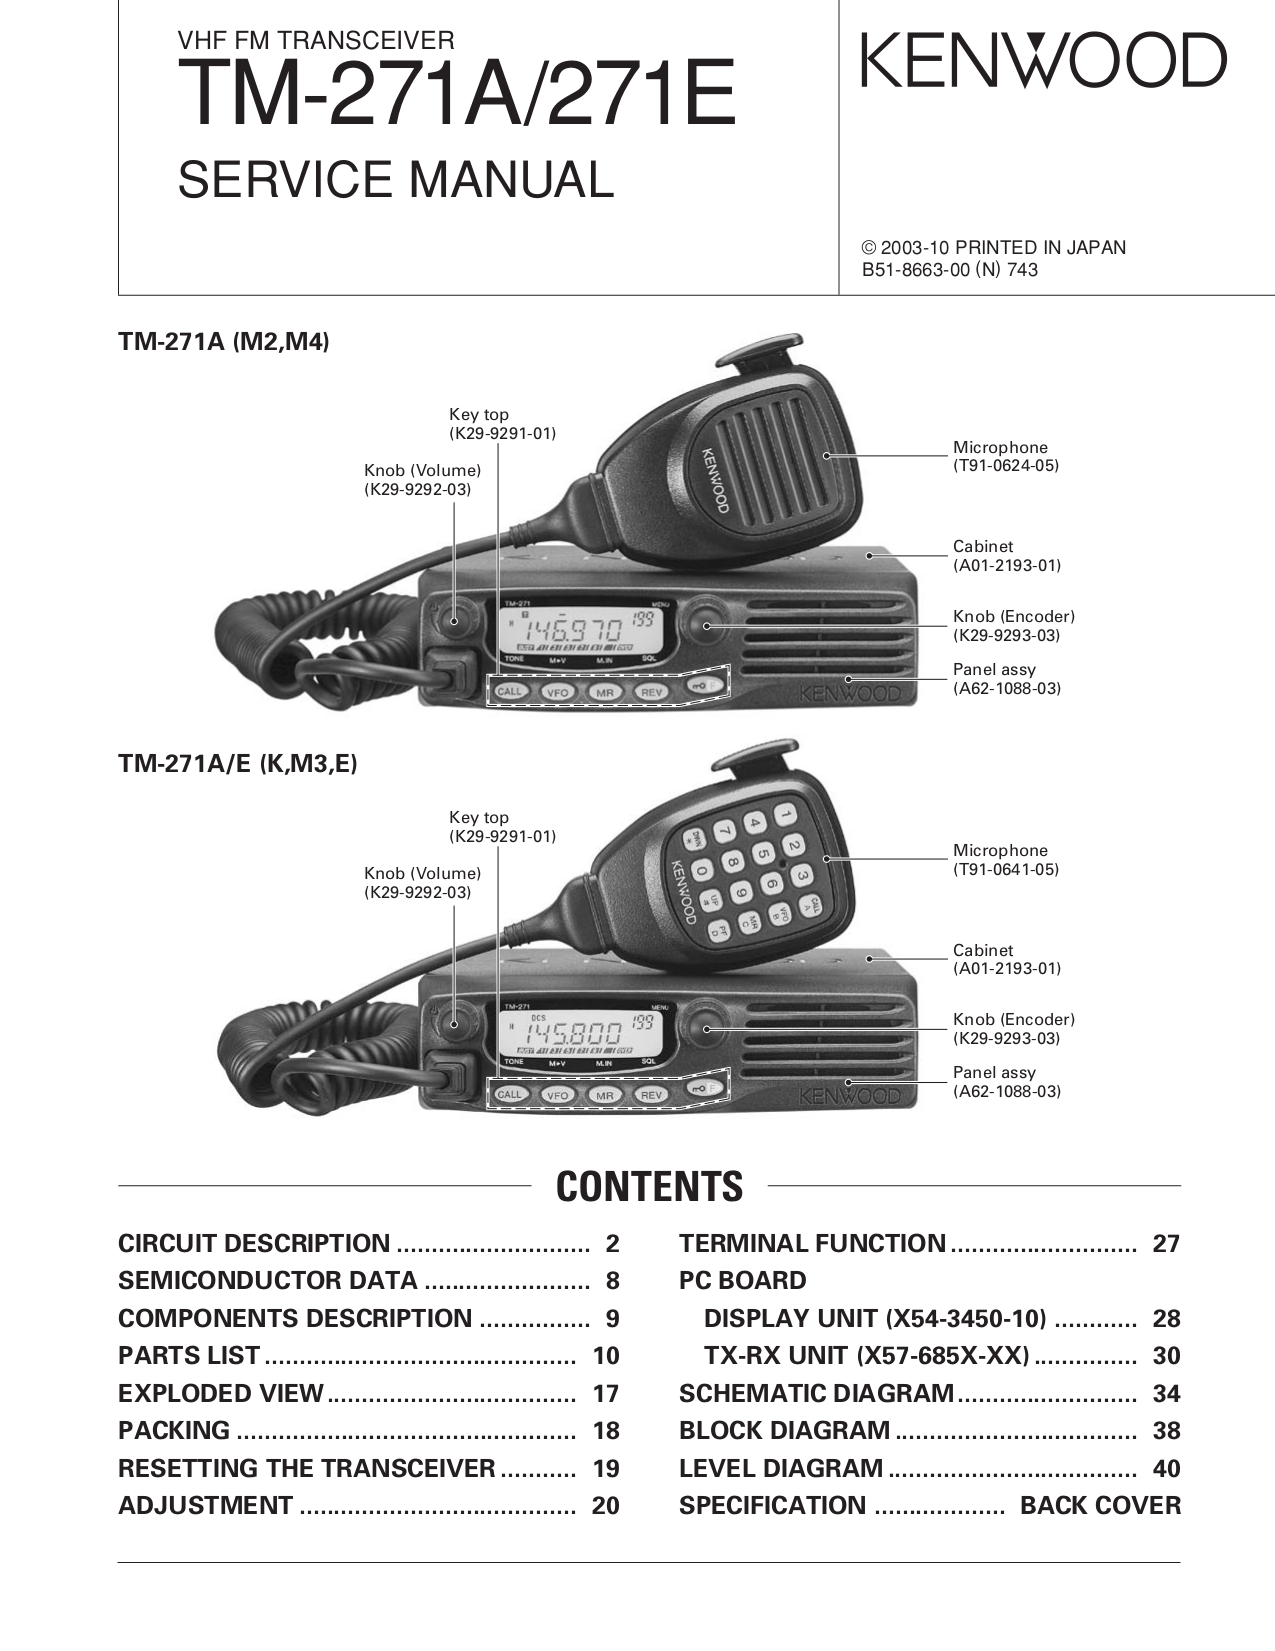 tm 271a svc man.pdf 0 download free pdf for kenwood kdc 222 car receiver manual kenwood kdc 122 wiring diagram at creativeand.co